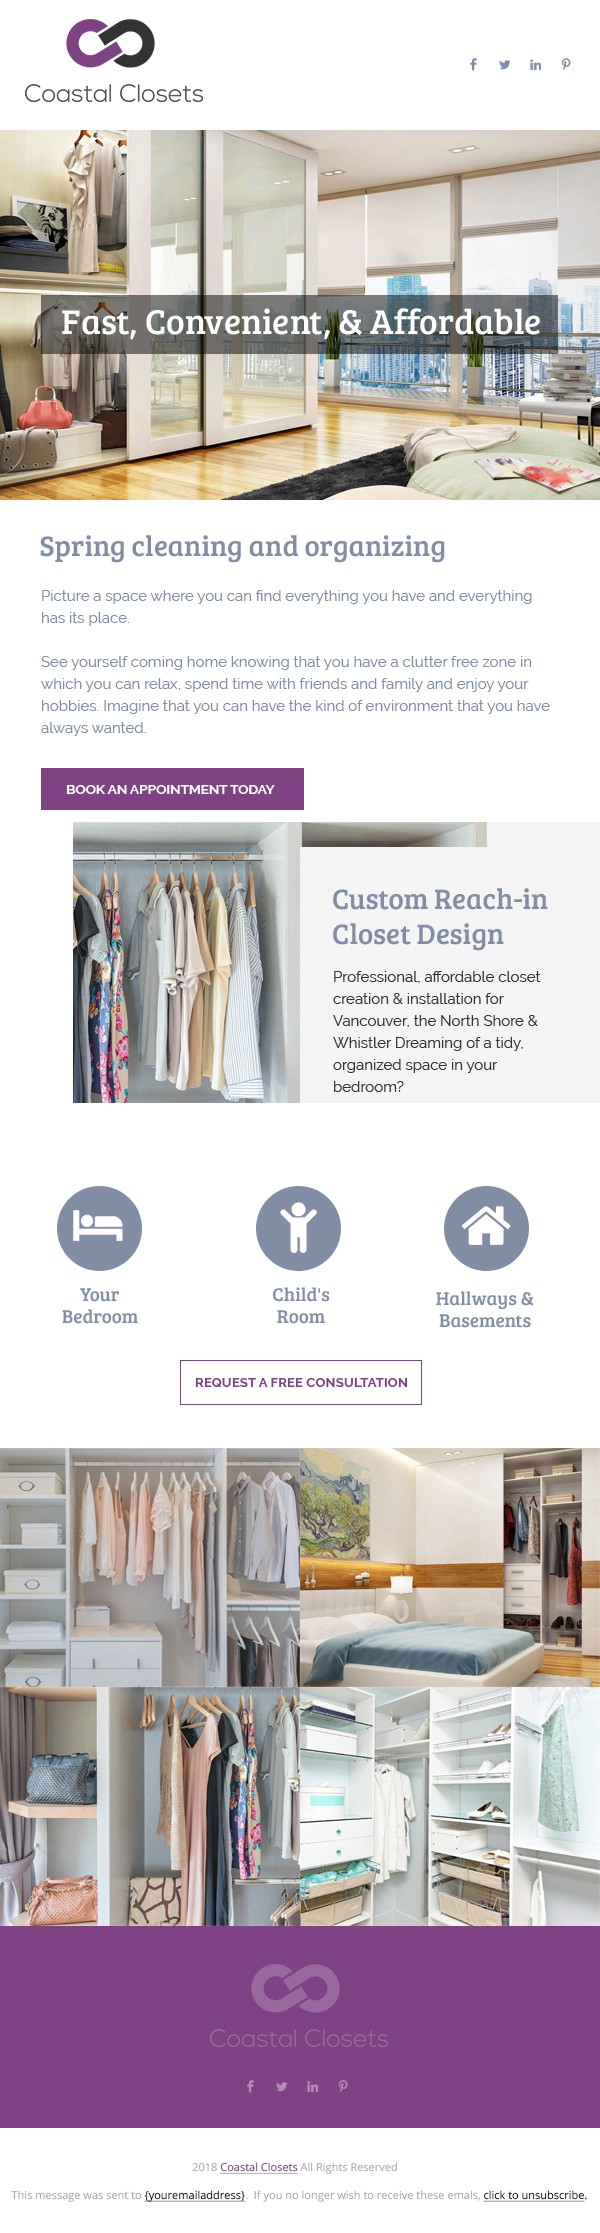 Design a feminine and stylish eblast for reach-in closets